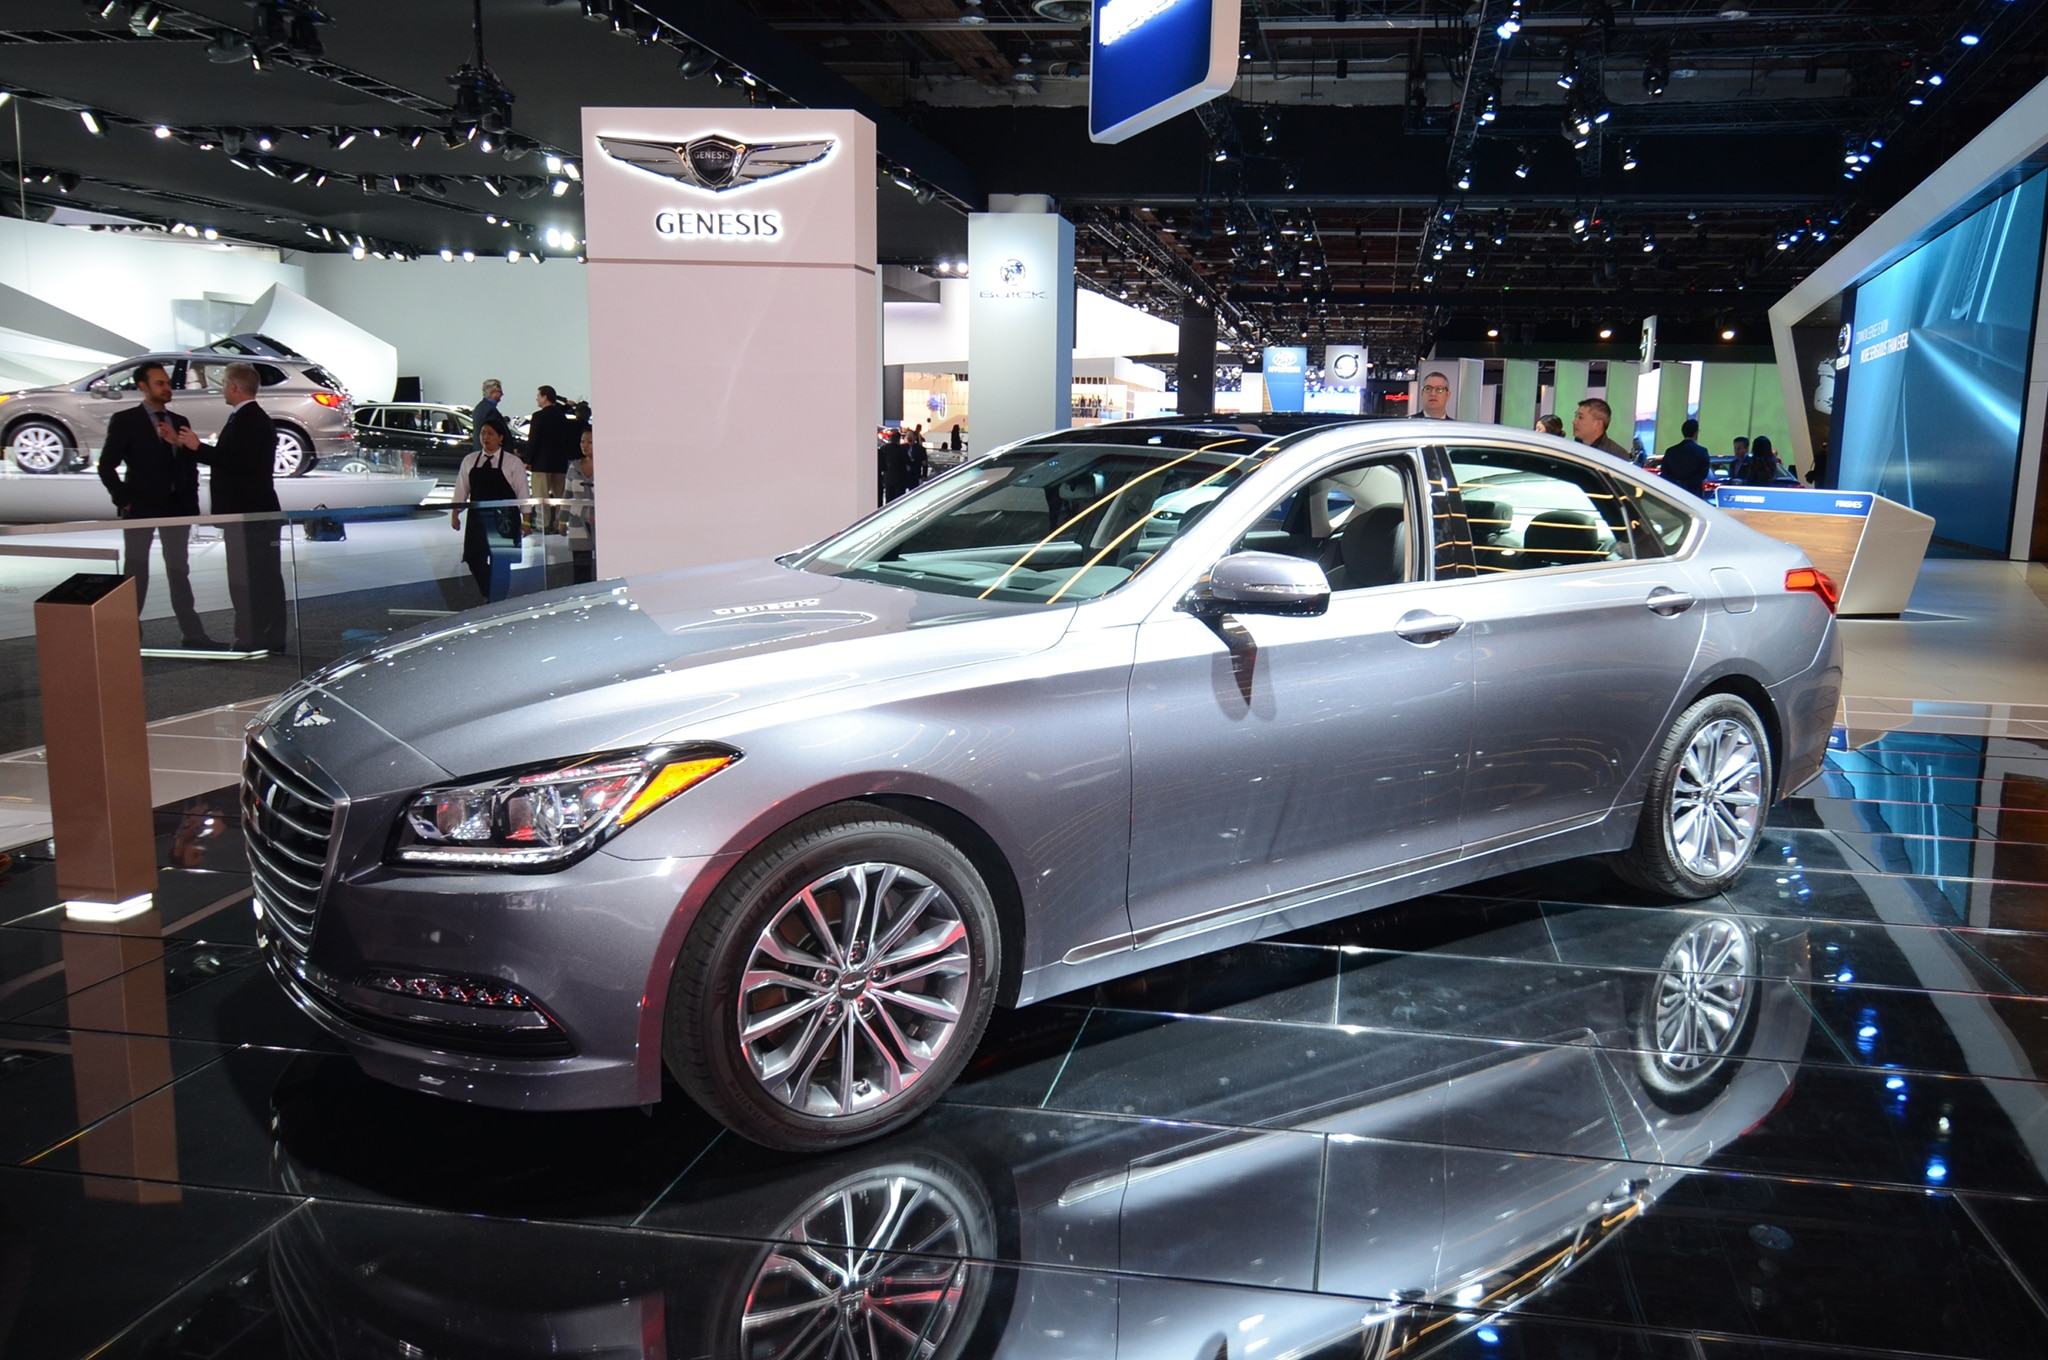 2017 genesis g80 sedan is a rebadged hyundai genesis. Black Bedroom Furniture Sets. Home Design Ideas